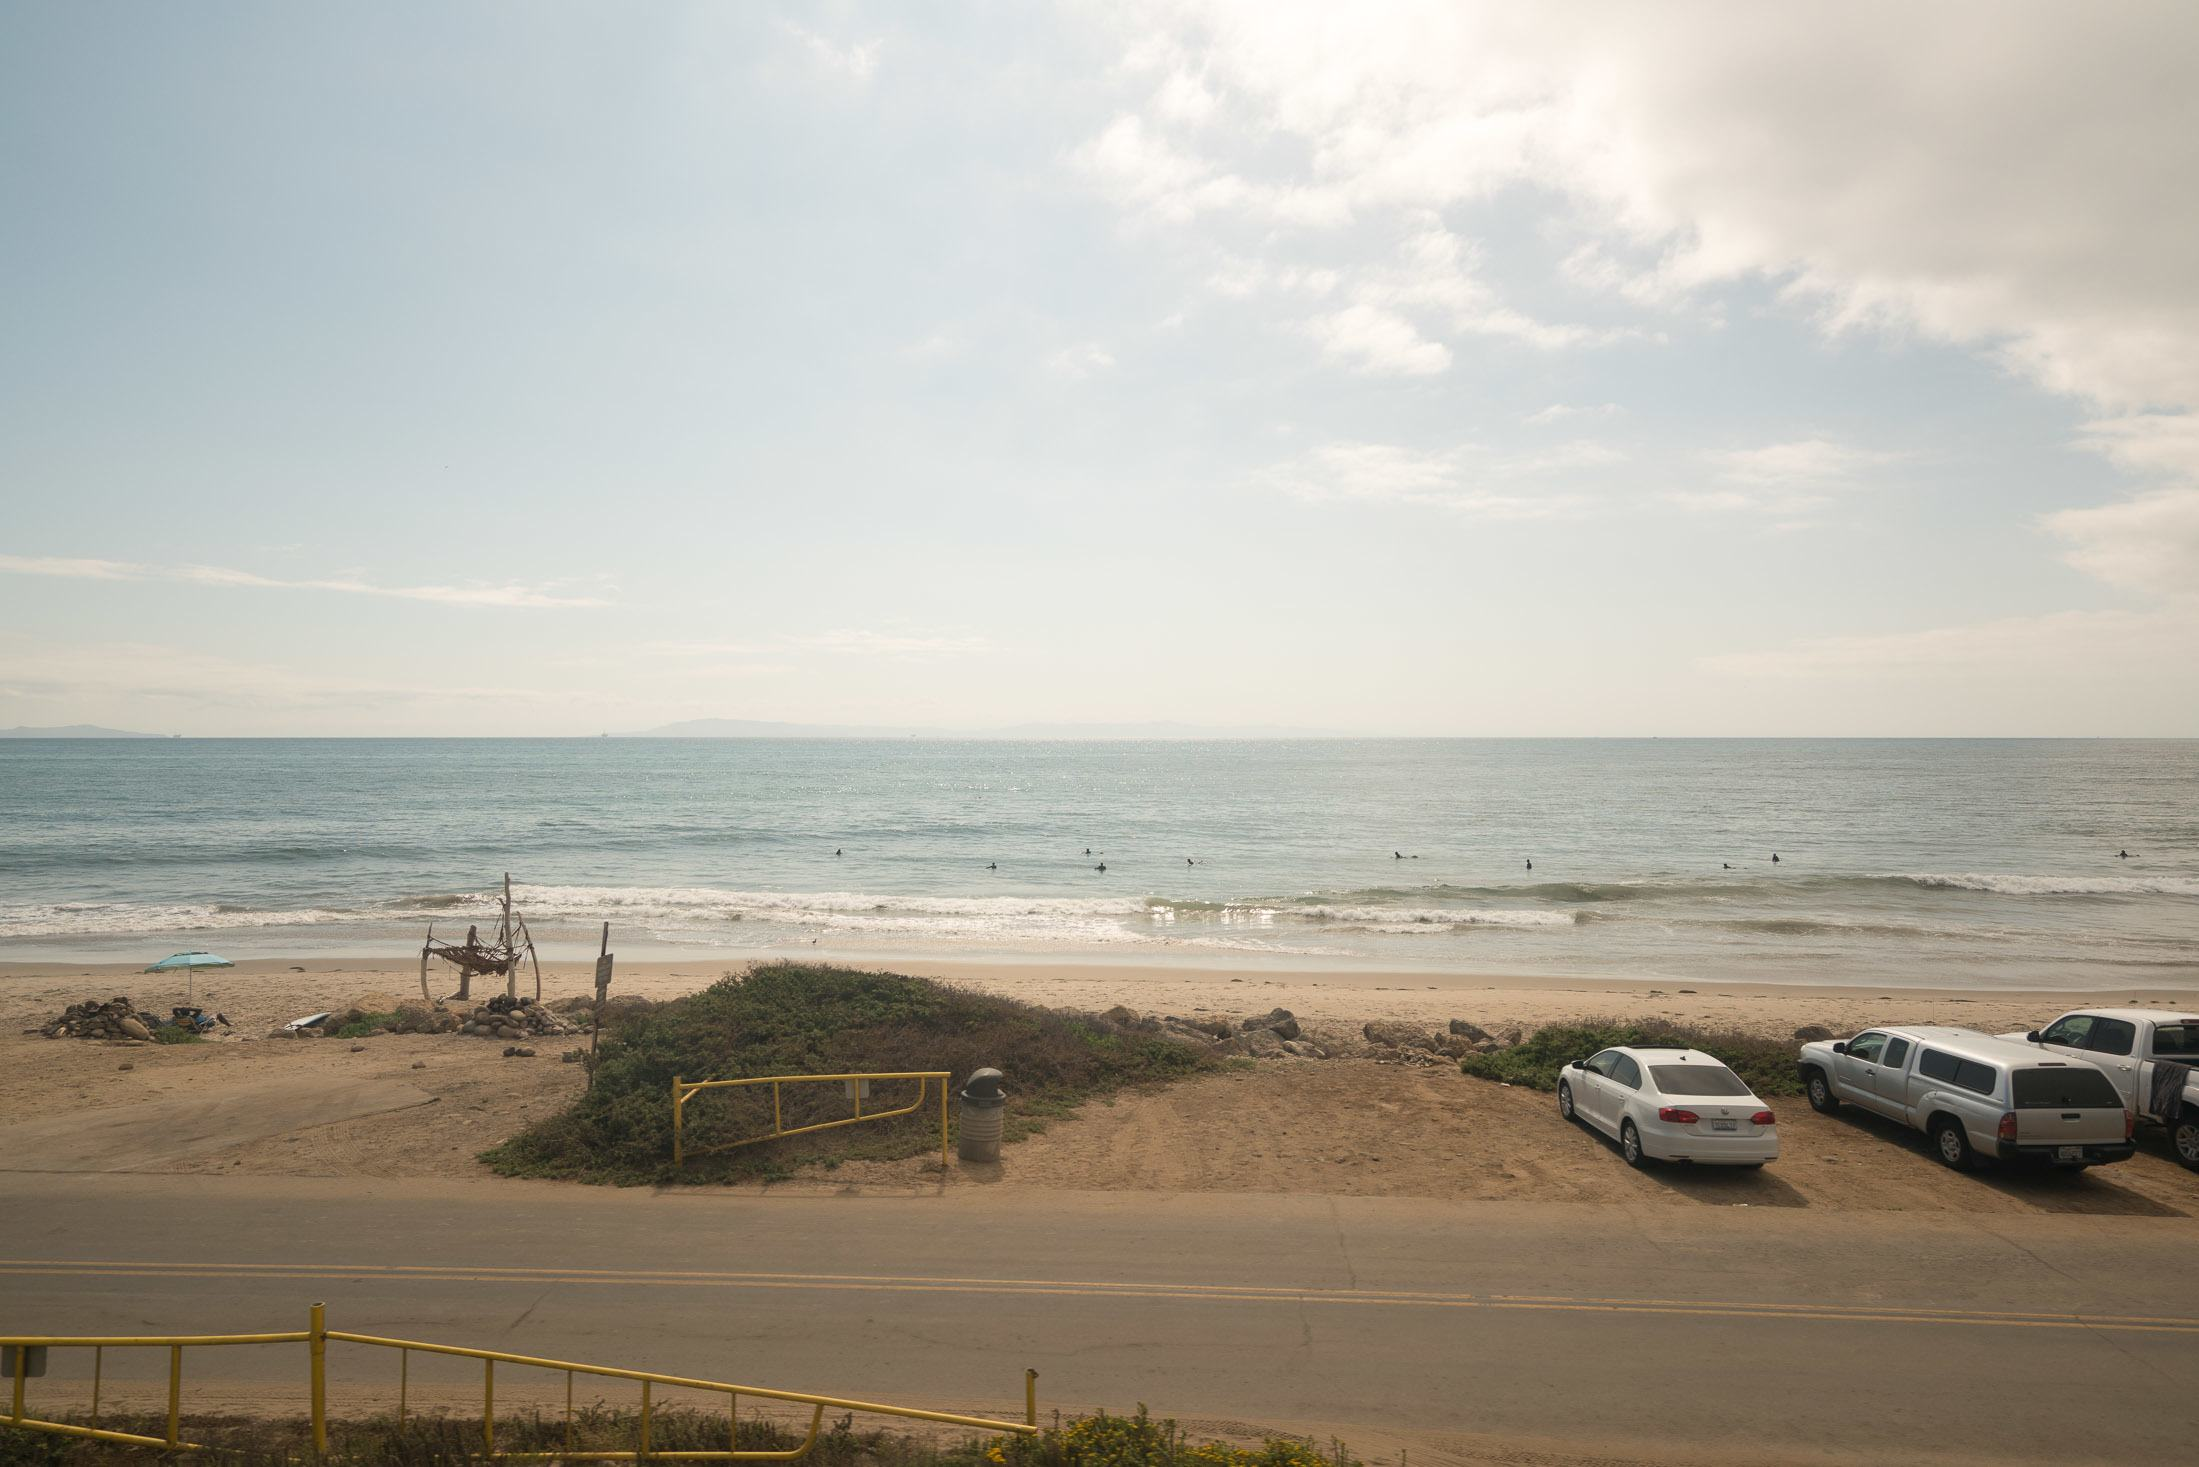 A review of Amtrak business class on the Pacific Surfliner train between San Diego and Santa Barbara.